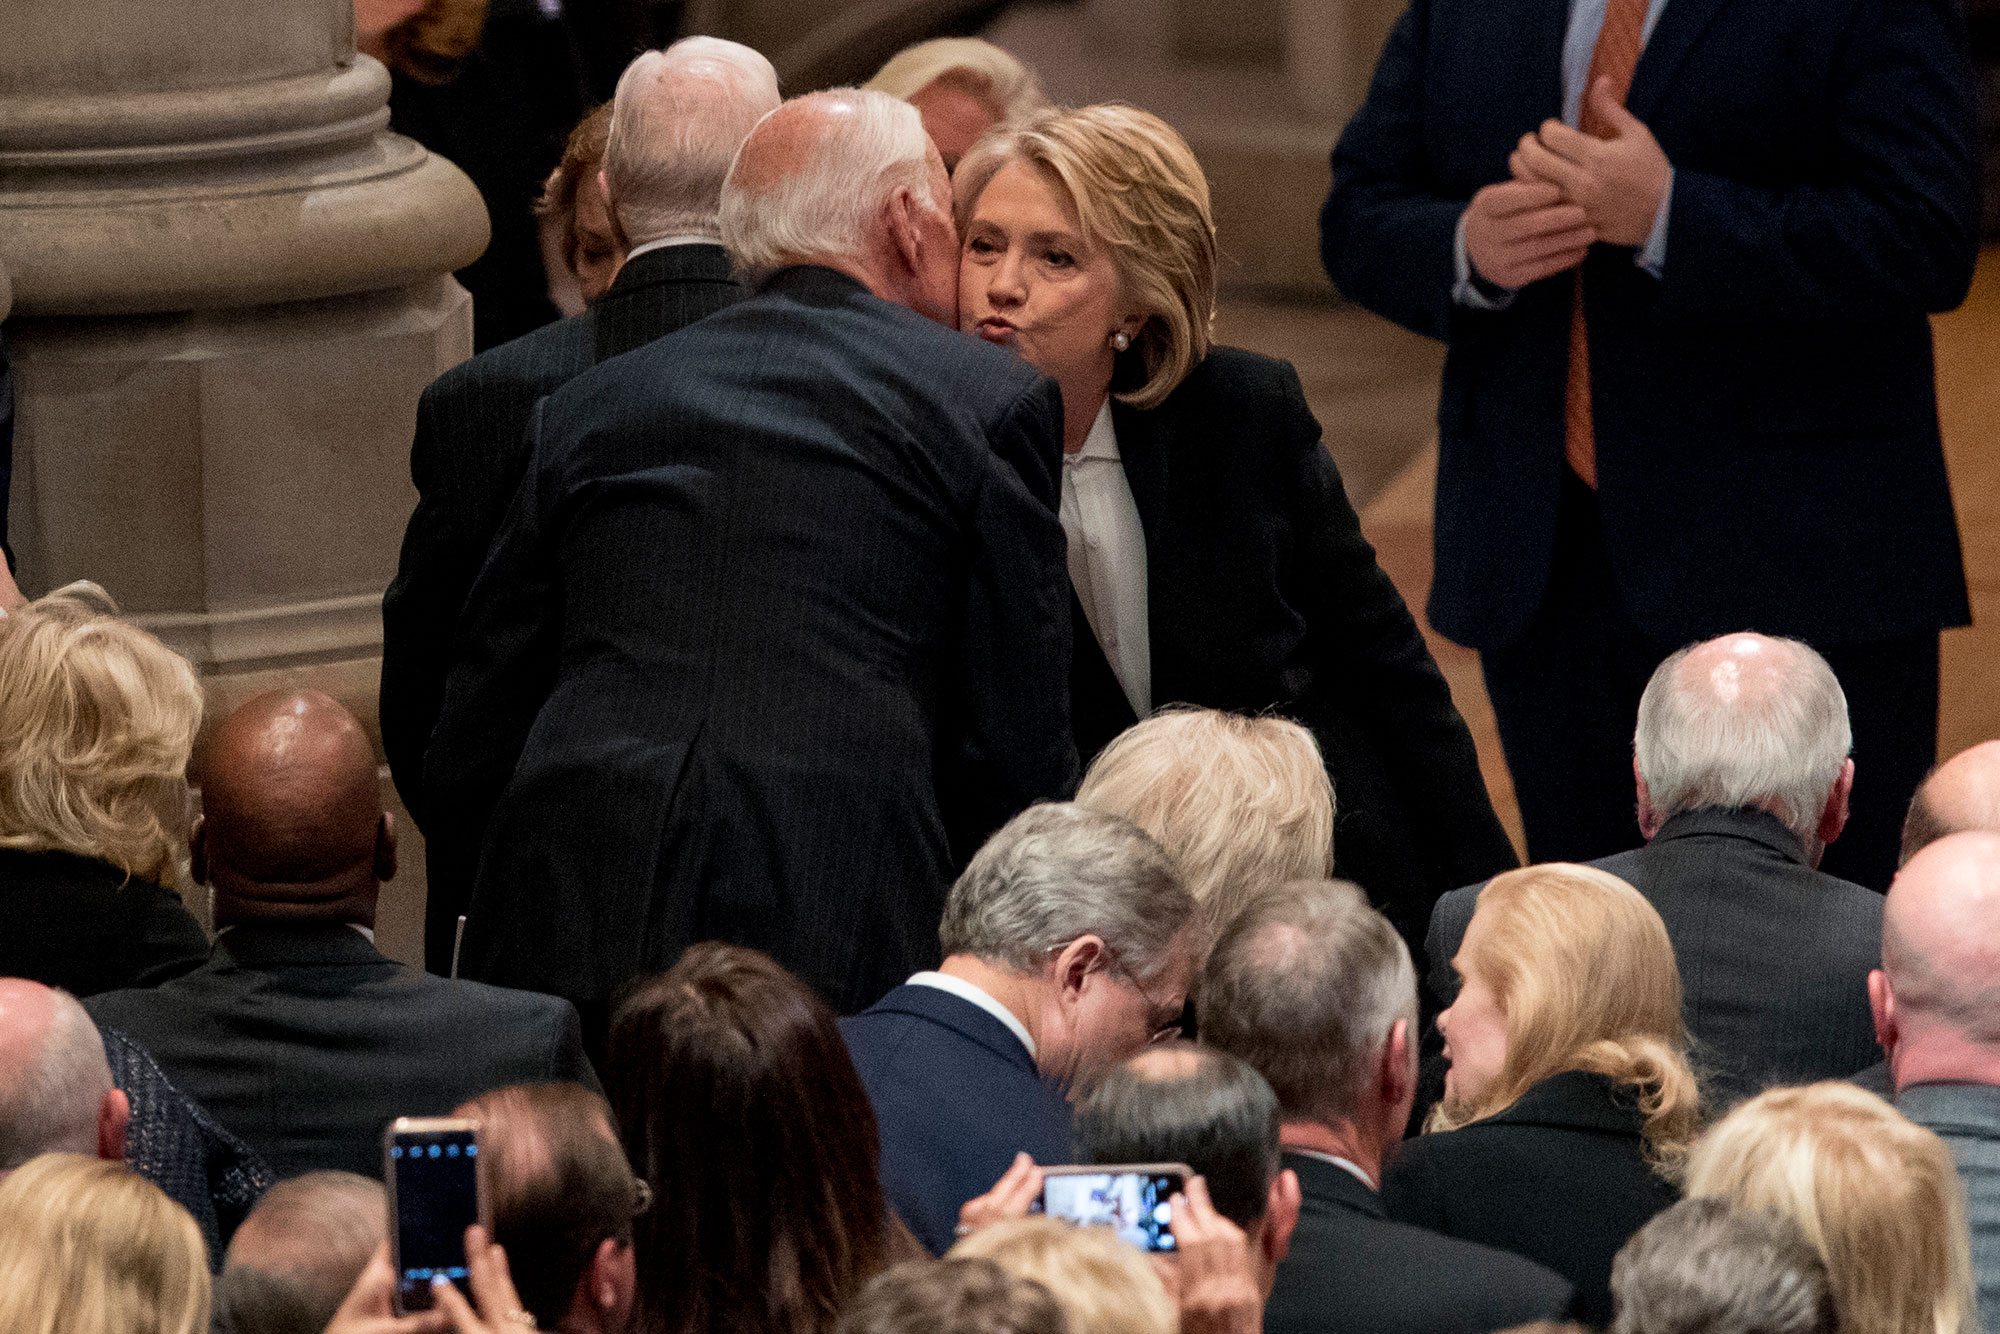 "<div class=""meta image-caption""><div class=""origin-logo origin-image none""><span>none</span></div><span class=""caption-text"">Former Secretary of State Hilary Clinton, right, greets former Vice President Joe Biden, left, before a State Funeral for former President George H.W. Bush. (Andrew Harnik, Pool/AP Photo)</span></div>"